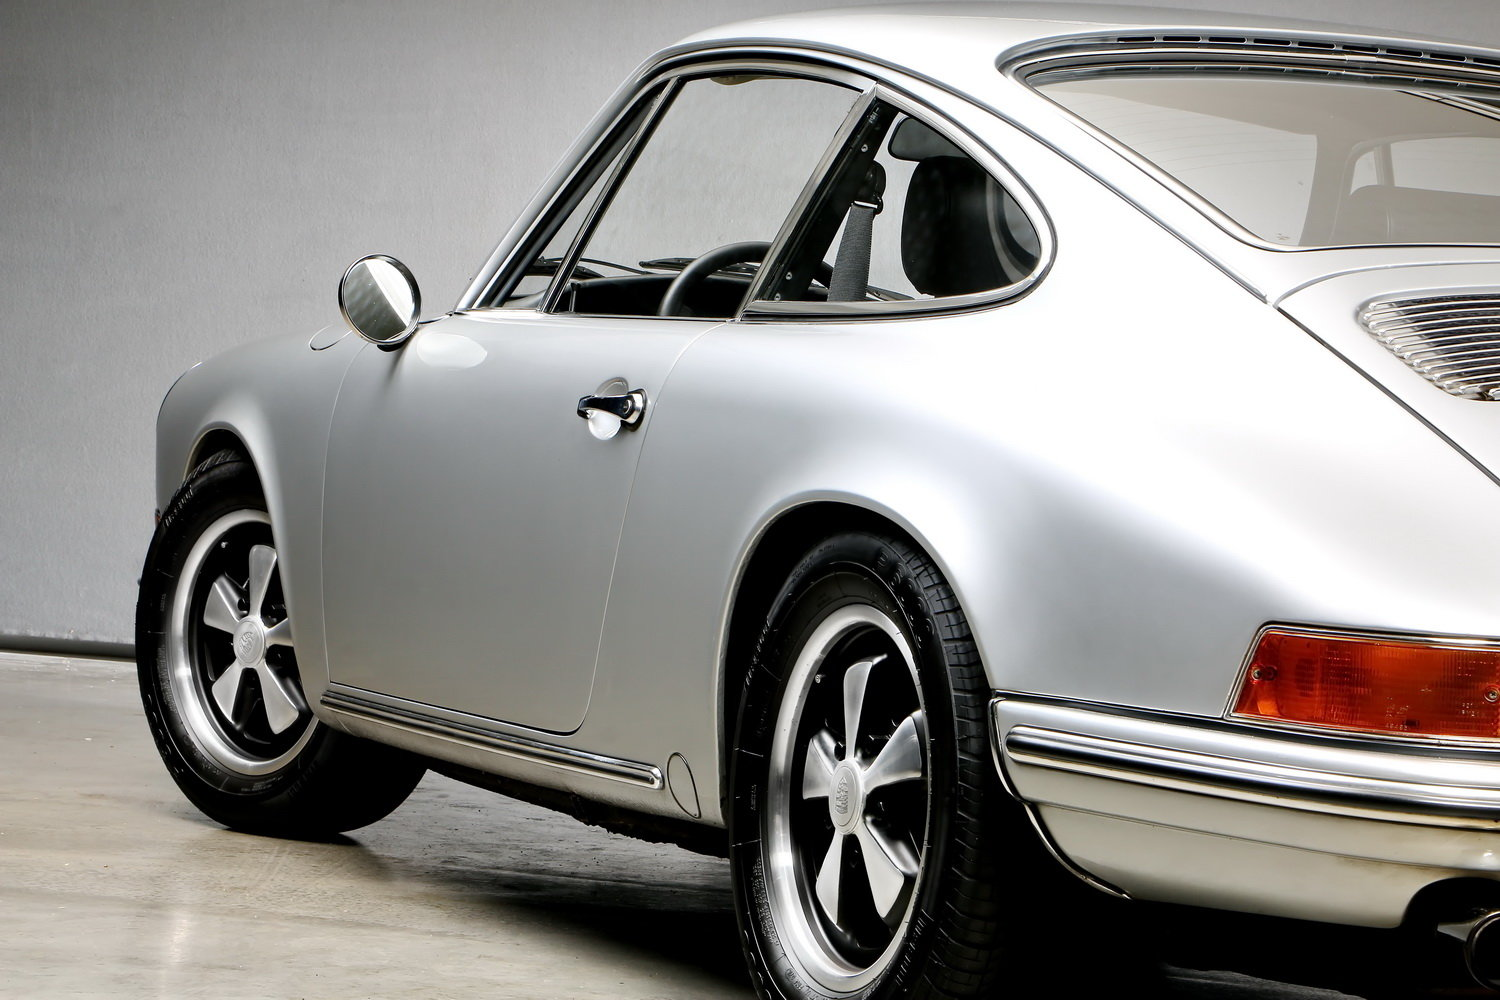 1970 911T 2.2 Ltr. Coup - Individualumbau - For Sale (picture 10 of 12)